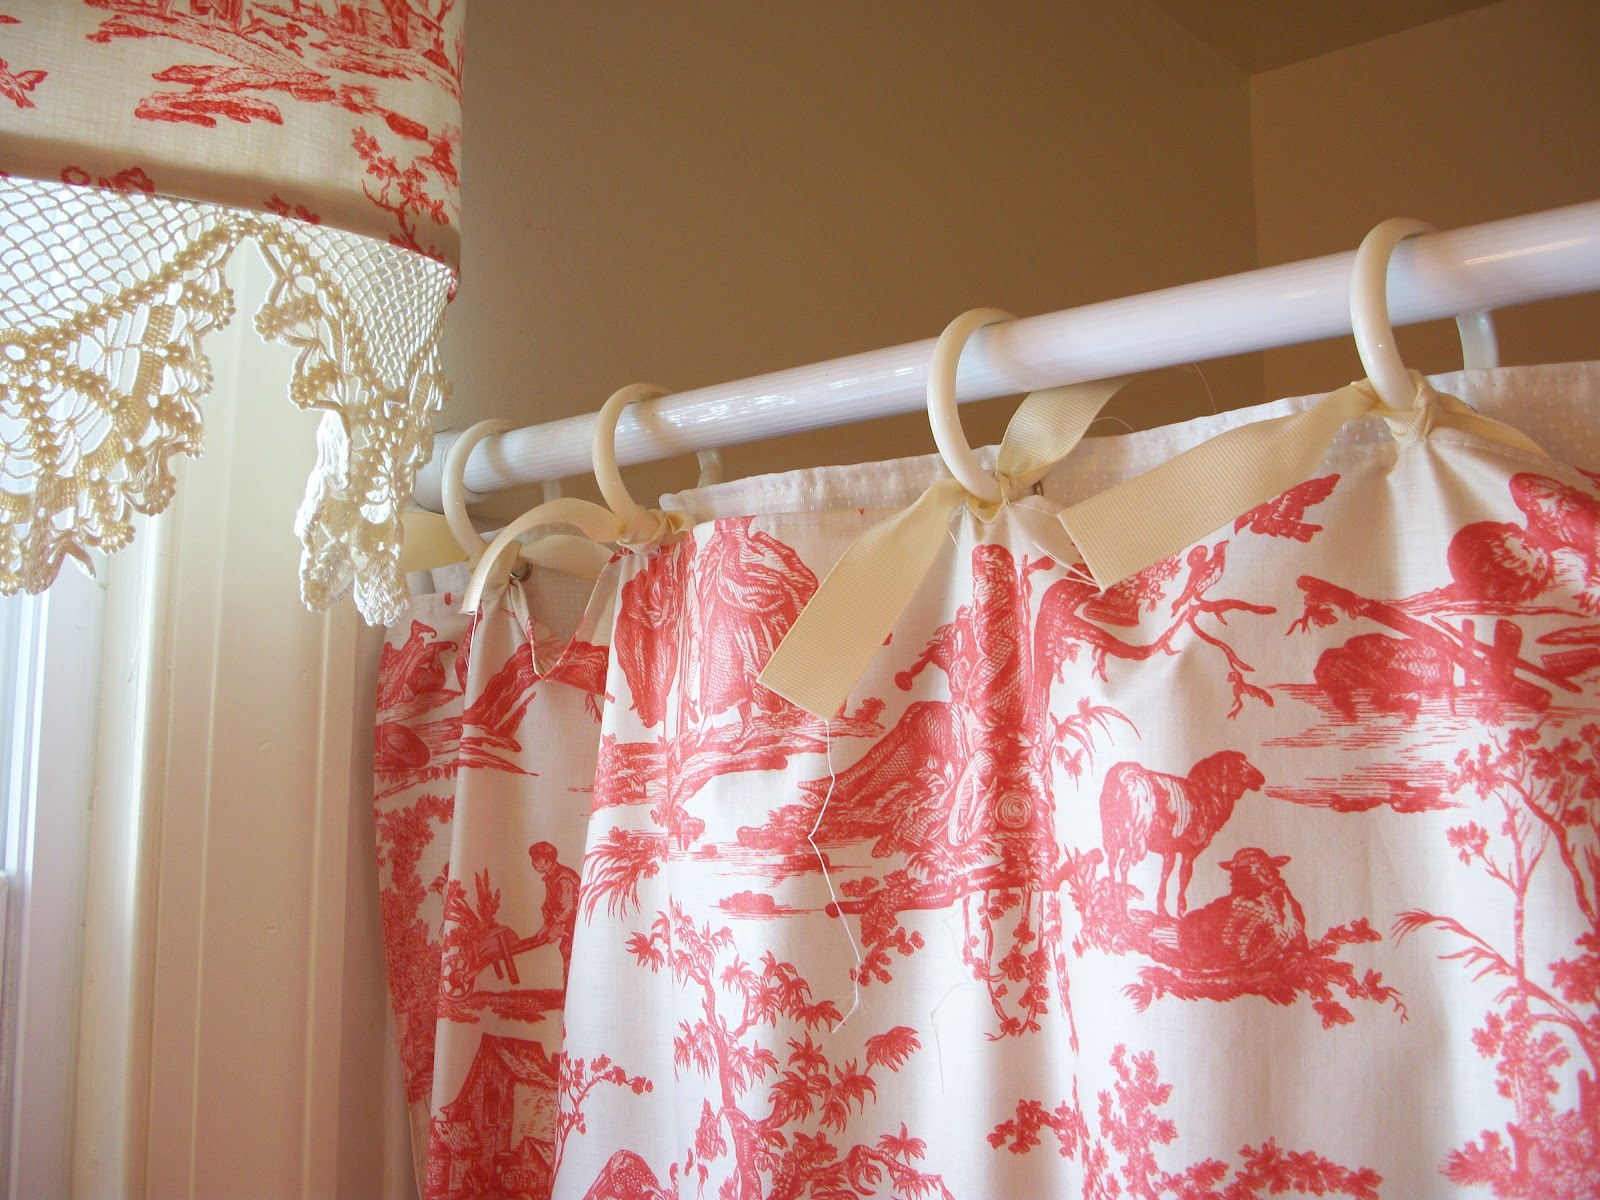 Retrospect: Red Toile Shower Curtain and Matching Valance